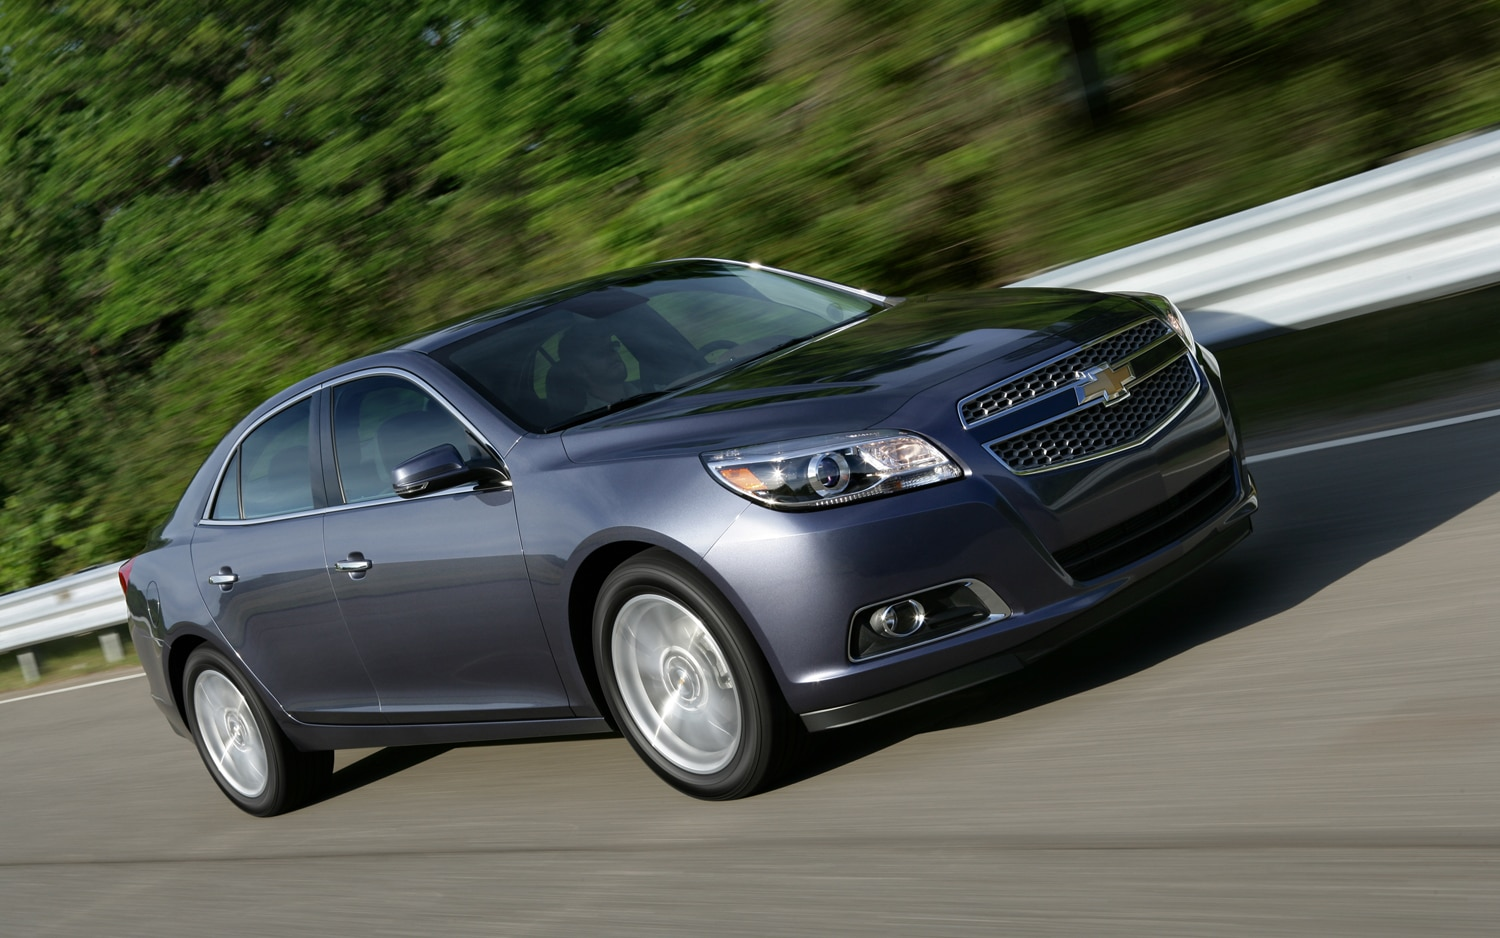 Malibu 2013 chevrolet malibu vin : First Drive: 2013 Chevrolet Malibu Turbo - Automobile Magazine